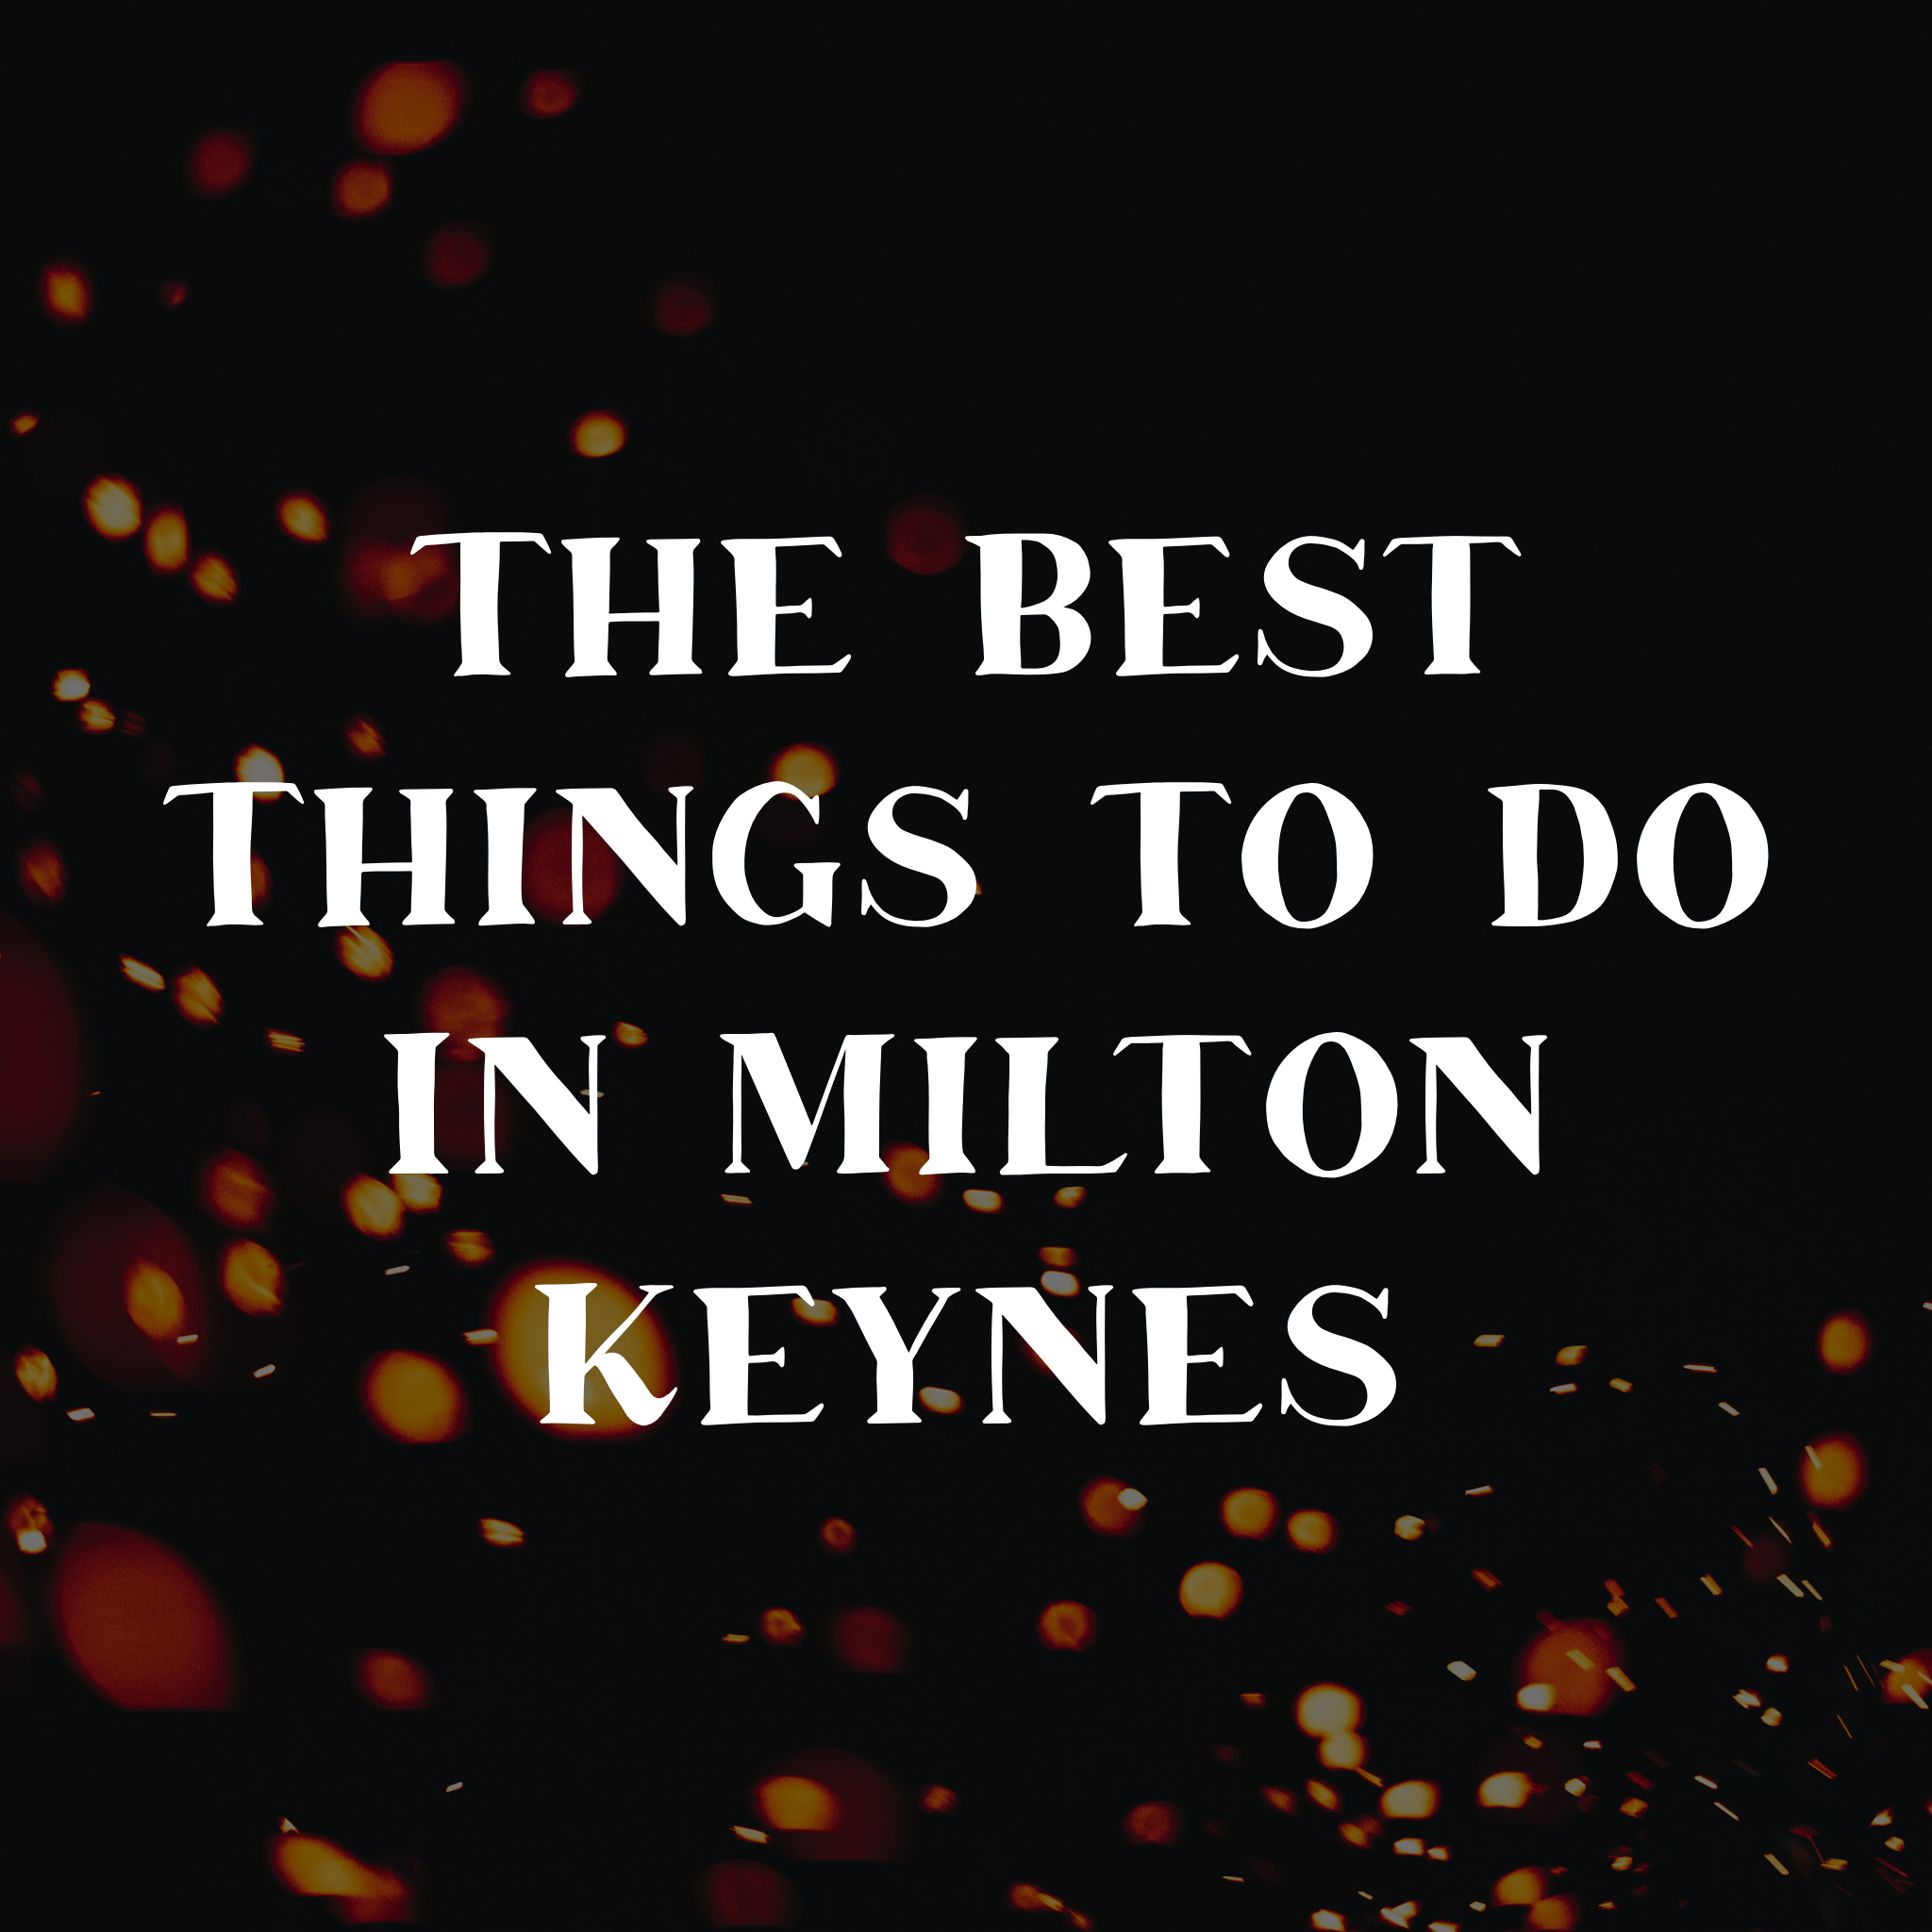 The BEST THINGS TO SEE AND DO IN MILTON KEYNES